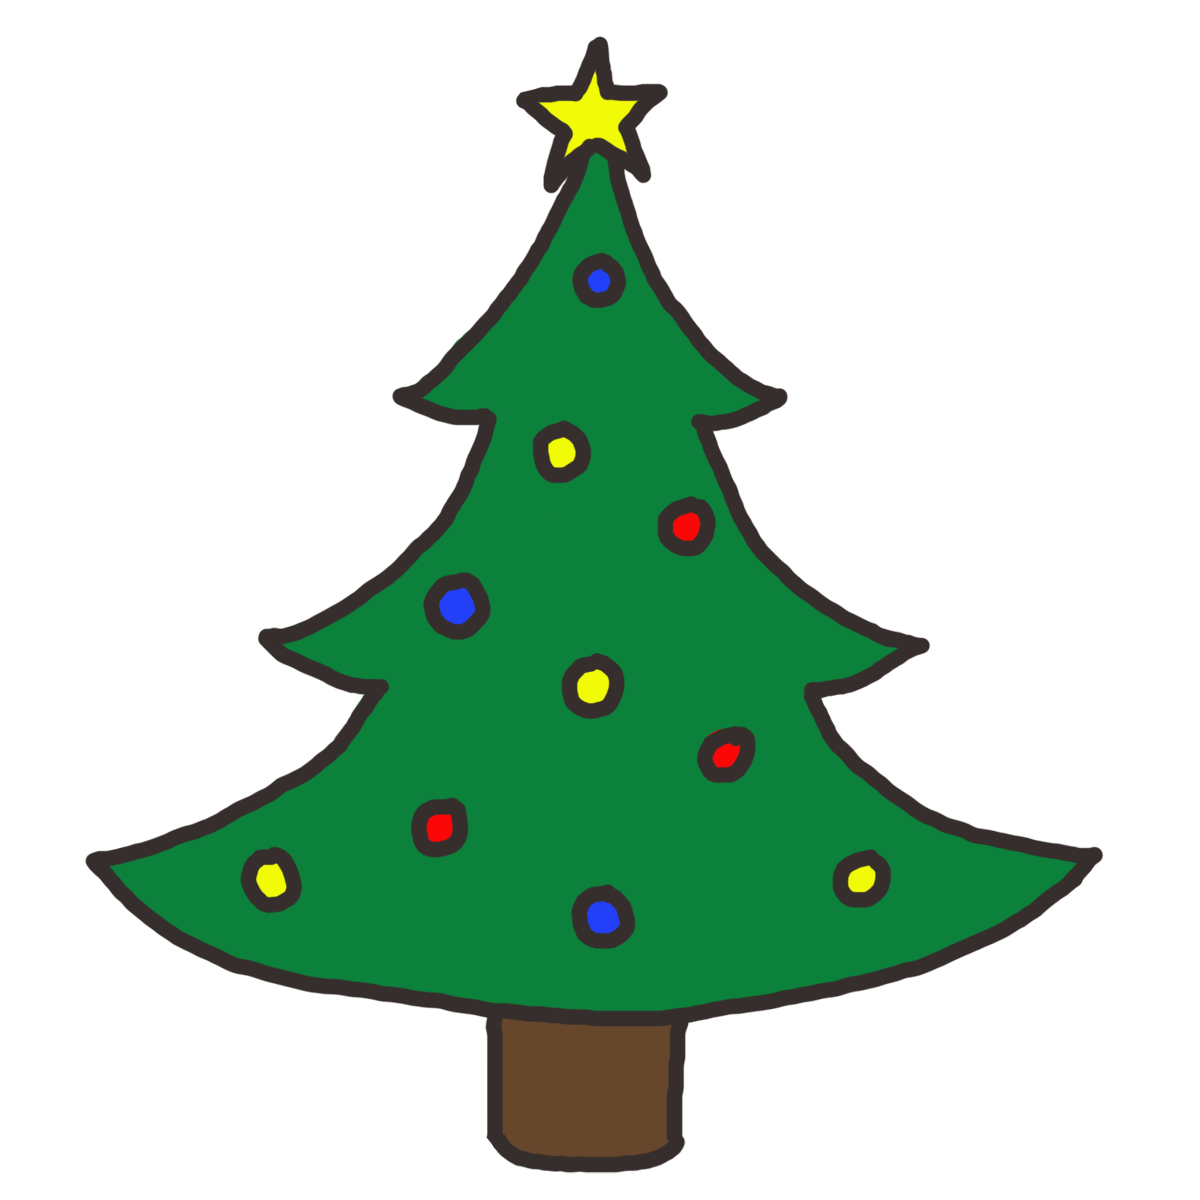 Christmas tree clipart png banner free Christmas tree clip arts - ClipartFox banner free